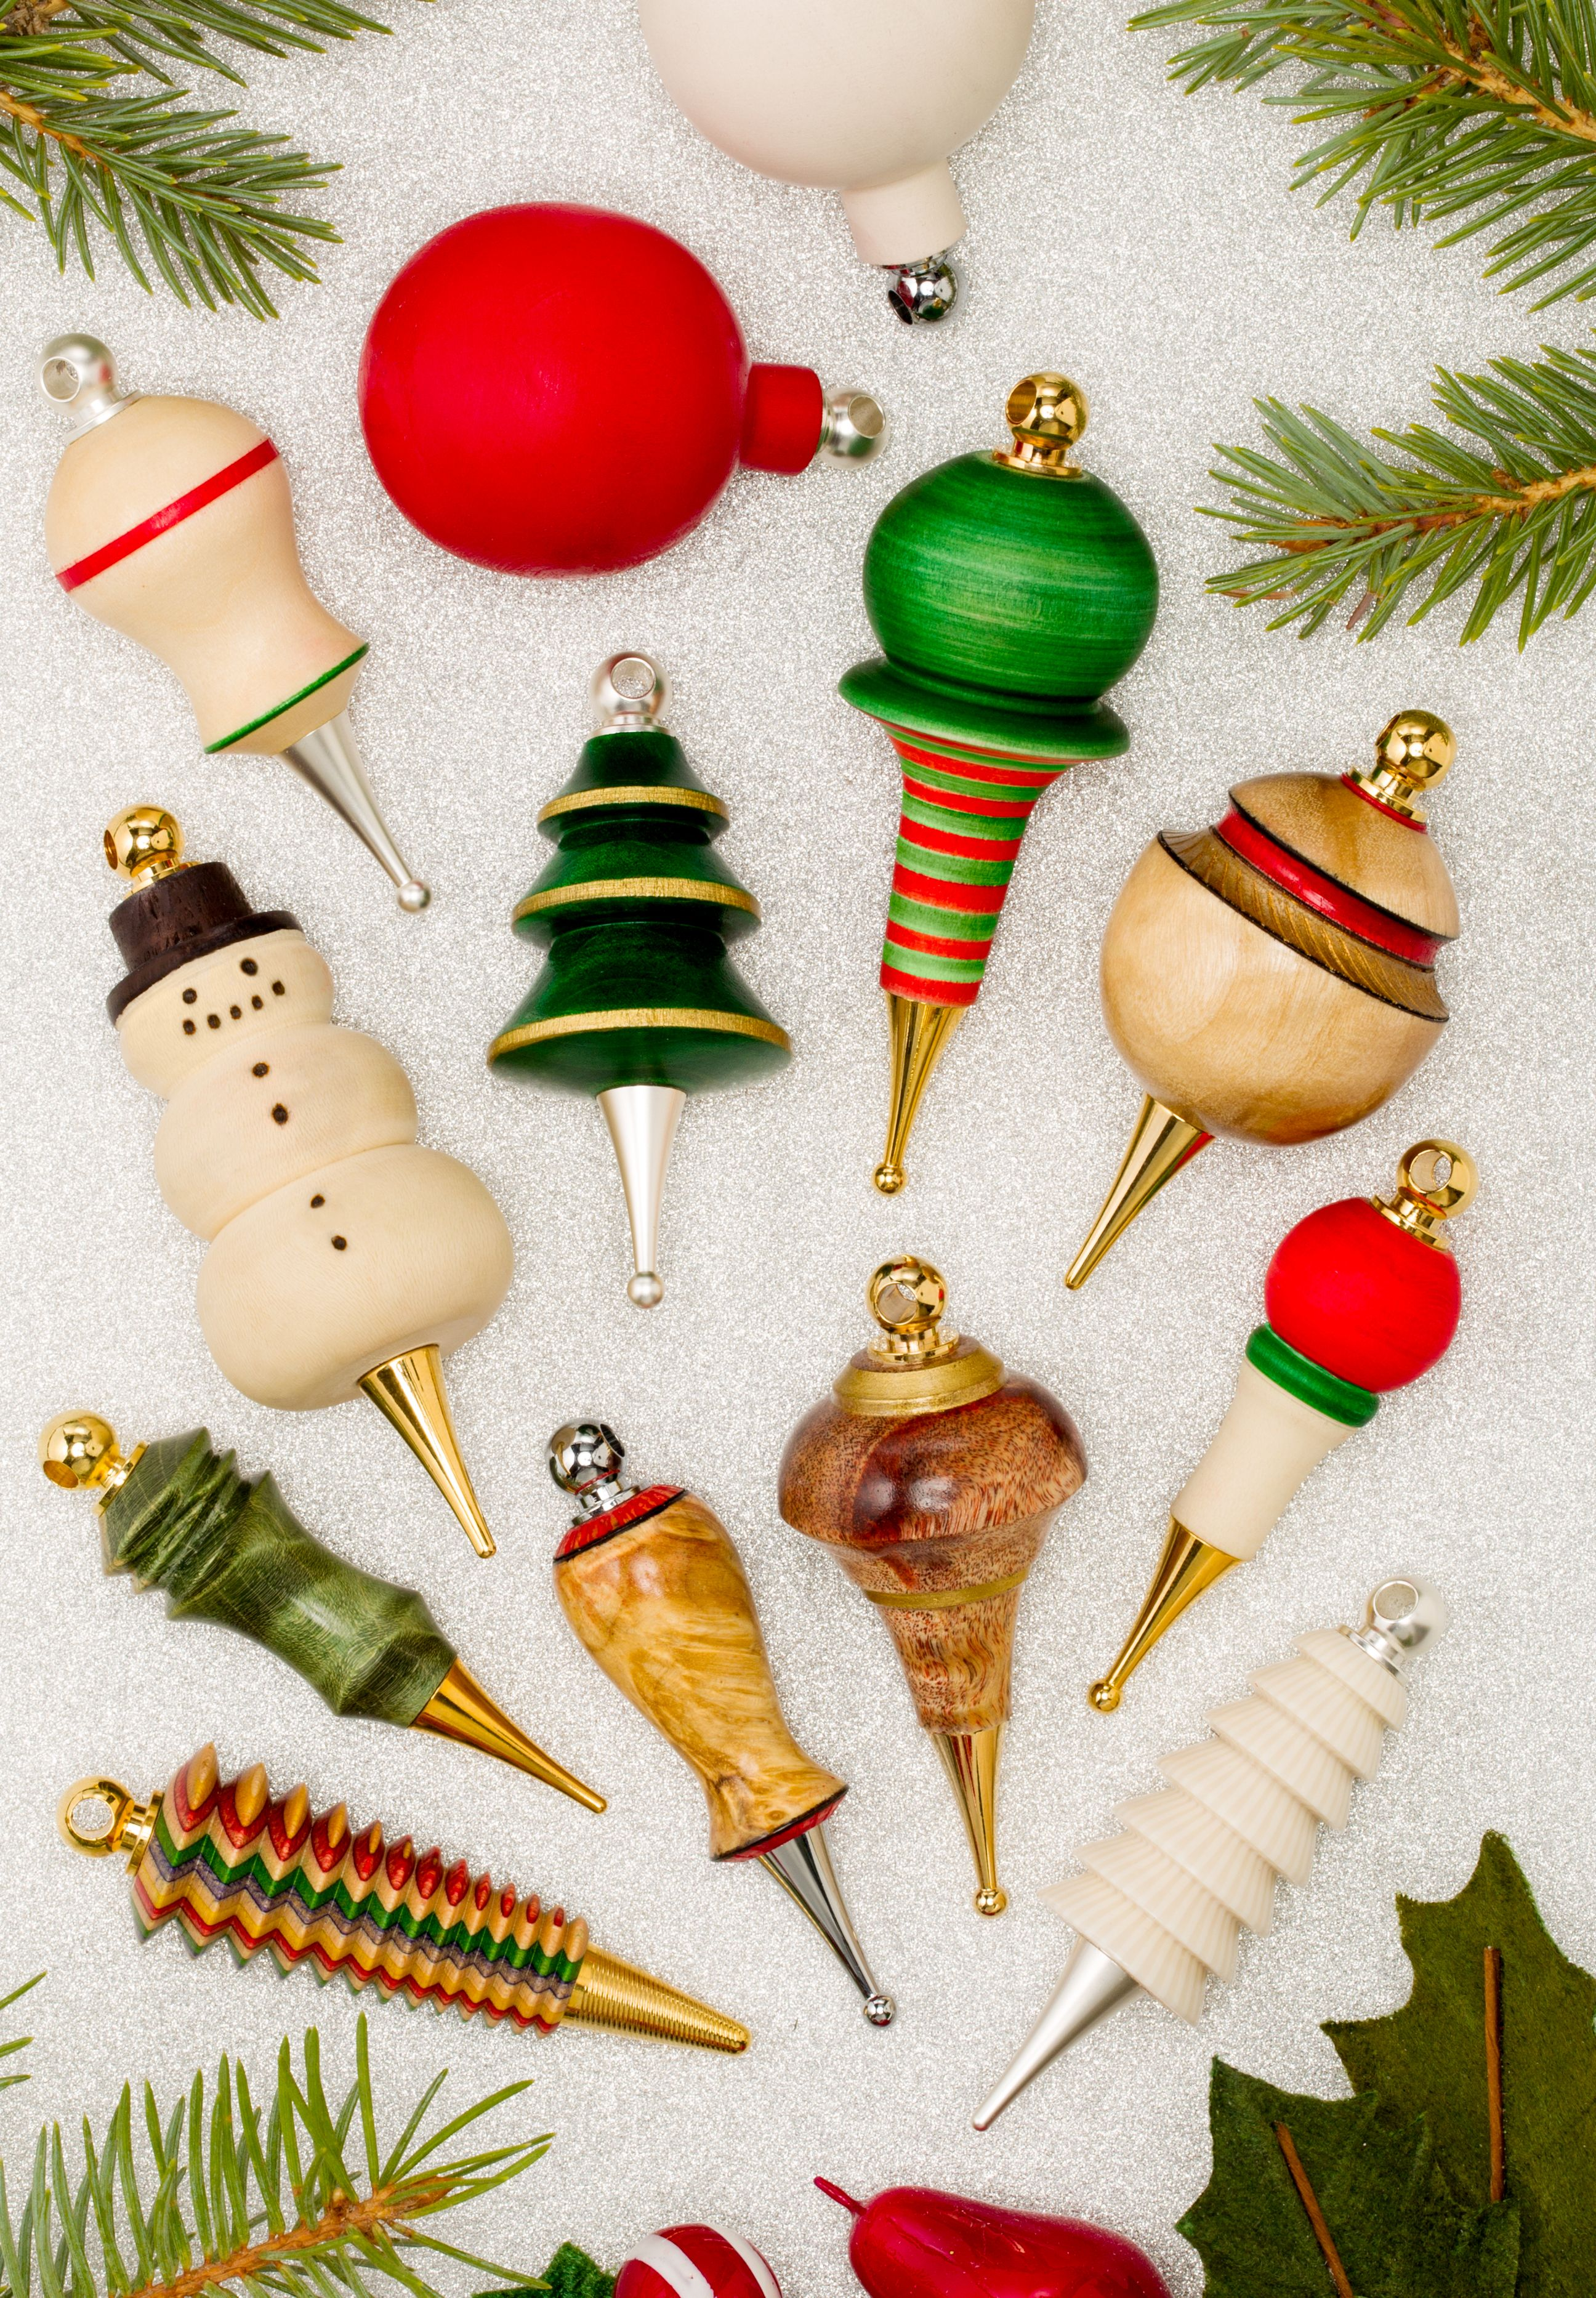 Christmas Tree Ornaments From Craft Supplies Usa Woodturning Woodturner Woodturnerscatalo Christmas Ornaments To Make Craft Supplies Usa Ornament Crafts